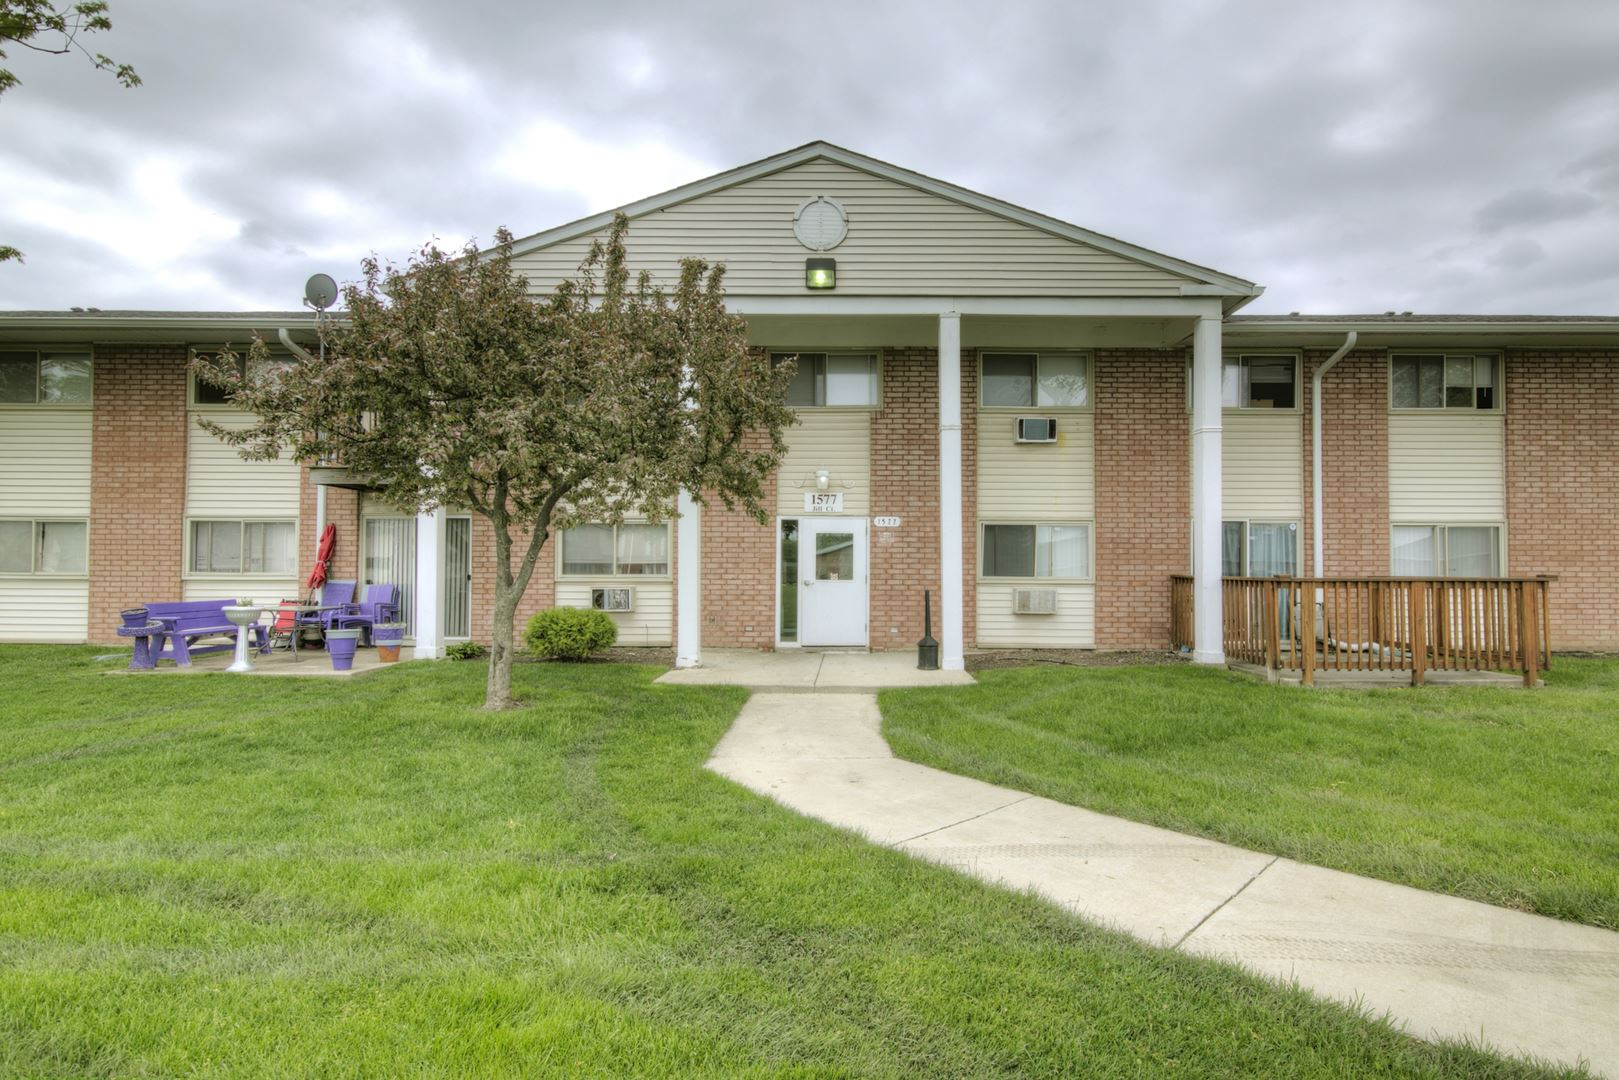 1577 Jill Court #201, Glendale Heights, IL 60139 - #: 10724381